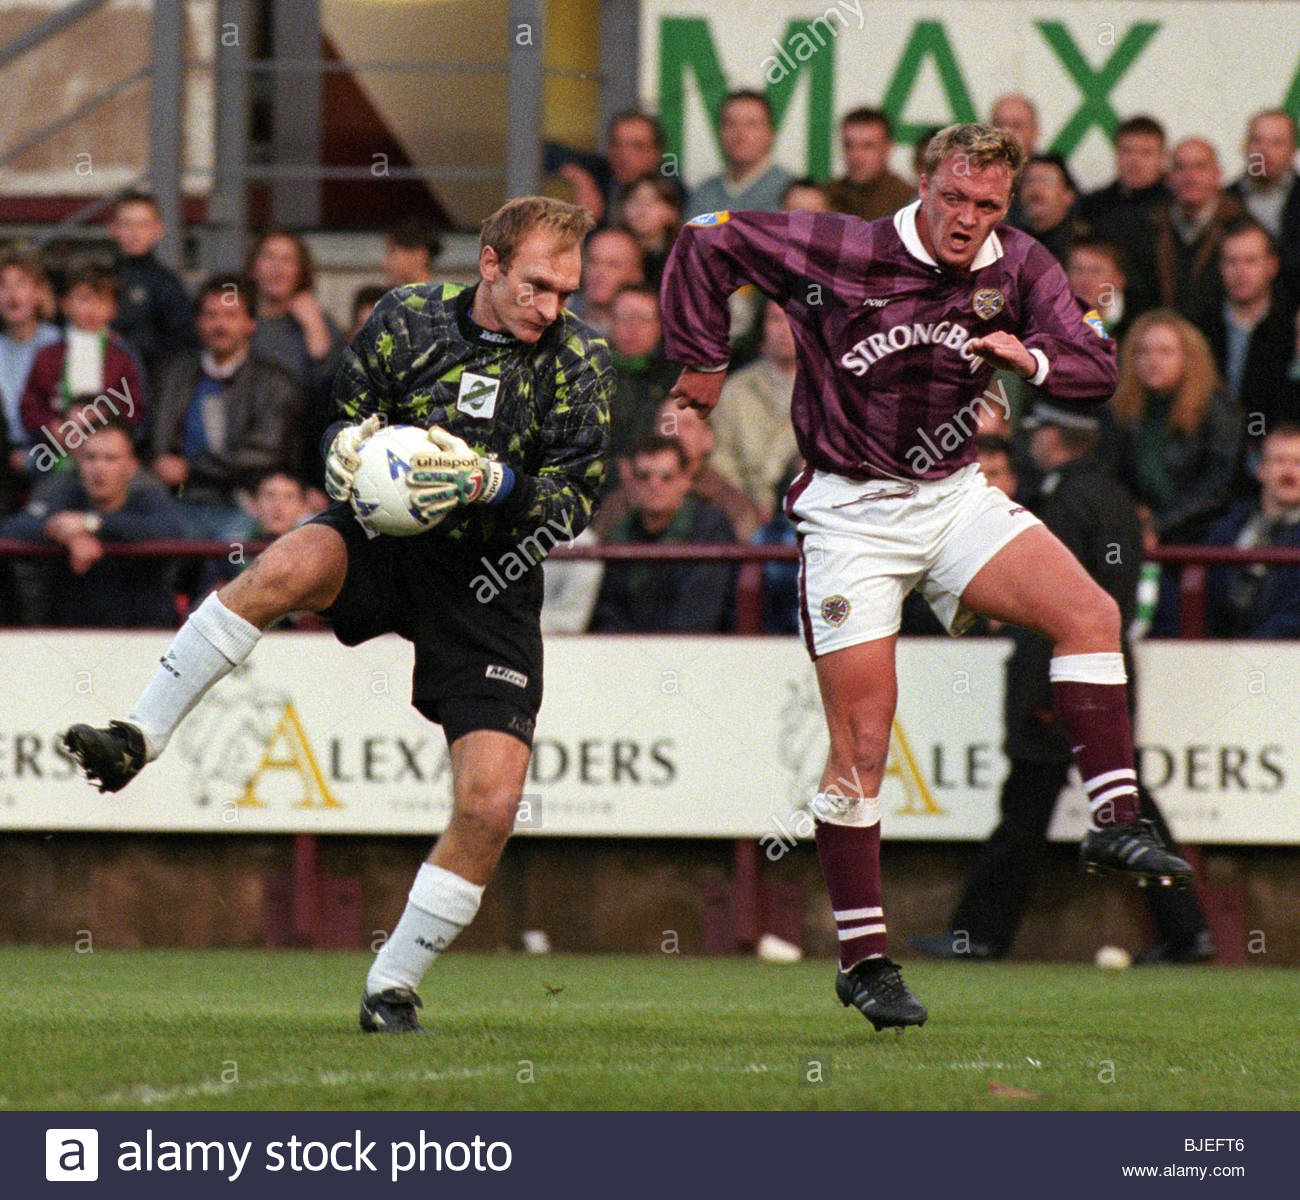 16/11/96 BELL'S PREMIER DIVISION HEARTS V HIBS (0-0) TYNECASTLE - EDINBURGH Hibs goalkeeper Jim Leighton clutches - Stock Image